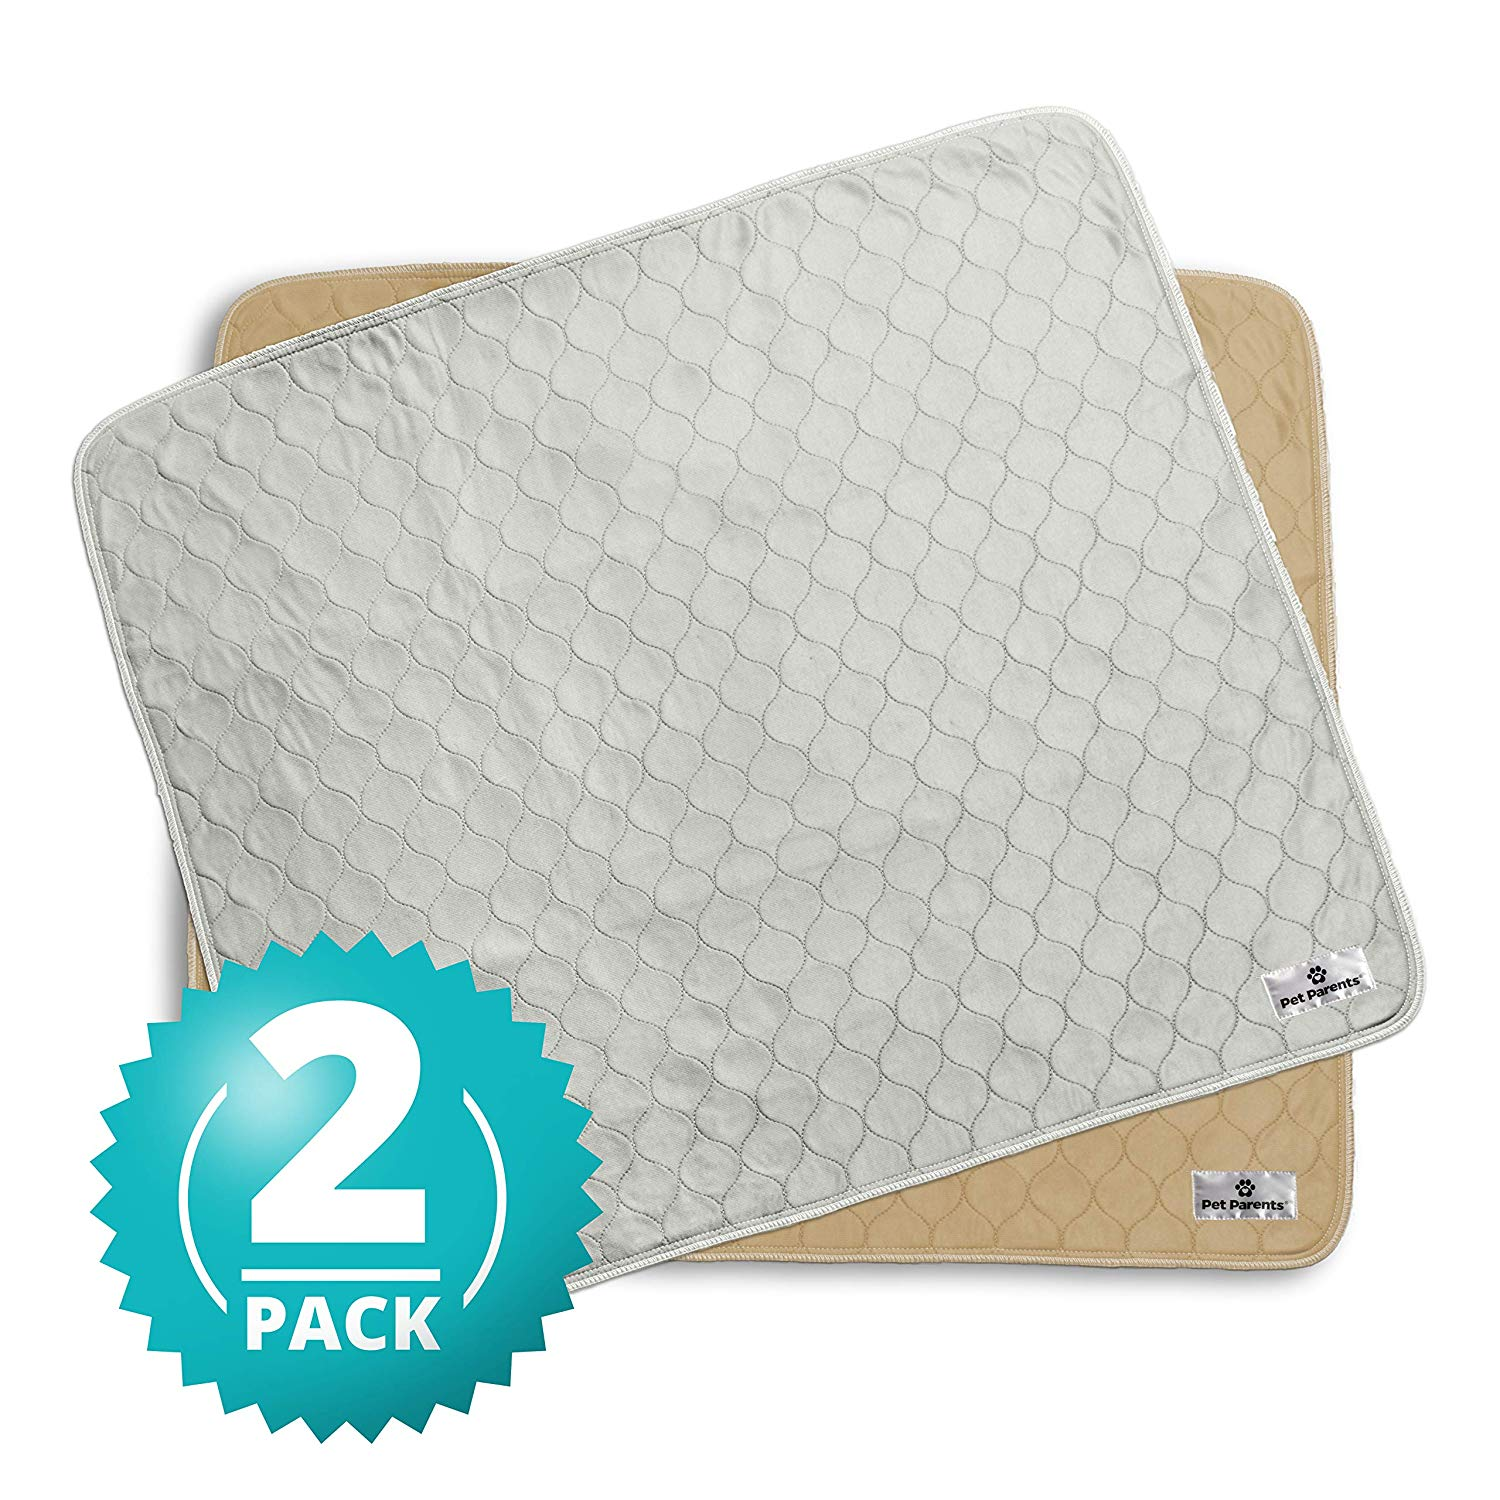 Pet Parents Washable Dog Pee Pads (2pack) of Premium Pee Pads for Dogs, Waterproof Whelping Pads, Reusable Dog Training Pads, Quality Travel Pet Pee Pads! Modern Puppy Pads! (1 Tan & 1 Grey)